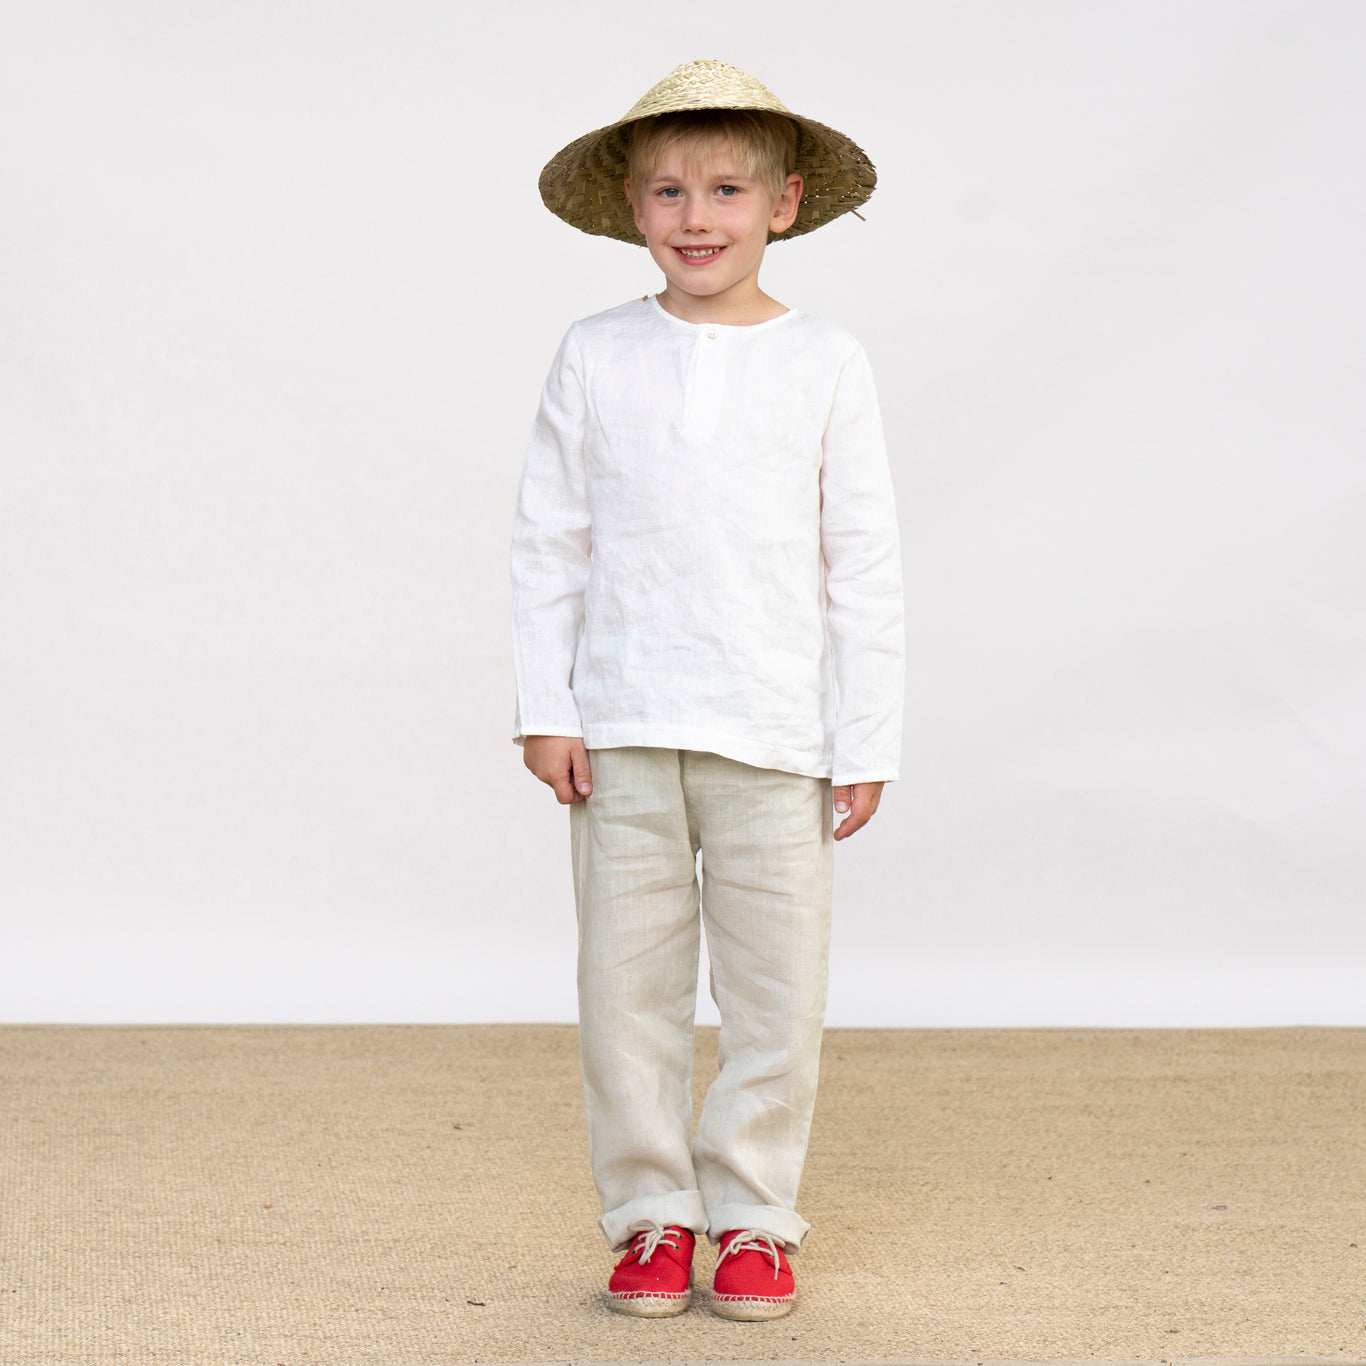 Omibia Looks SS20 Clothing and shoes